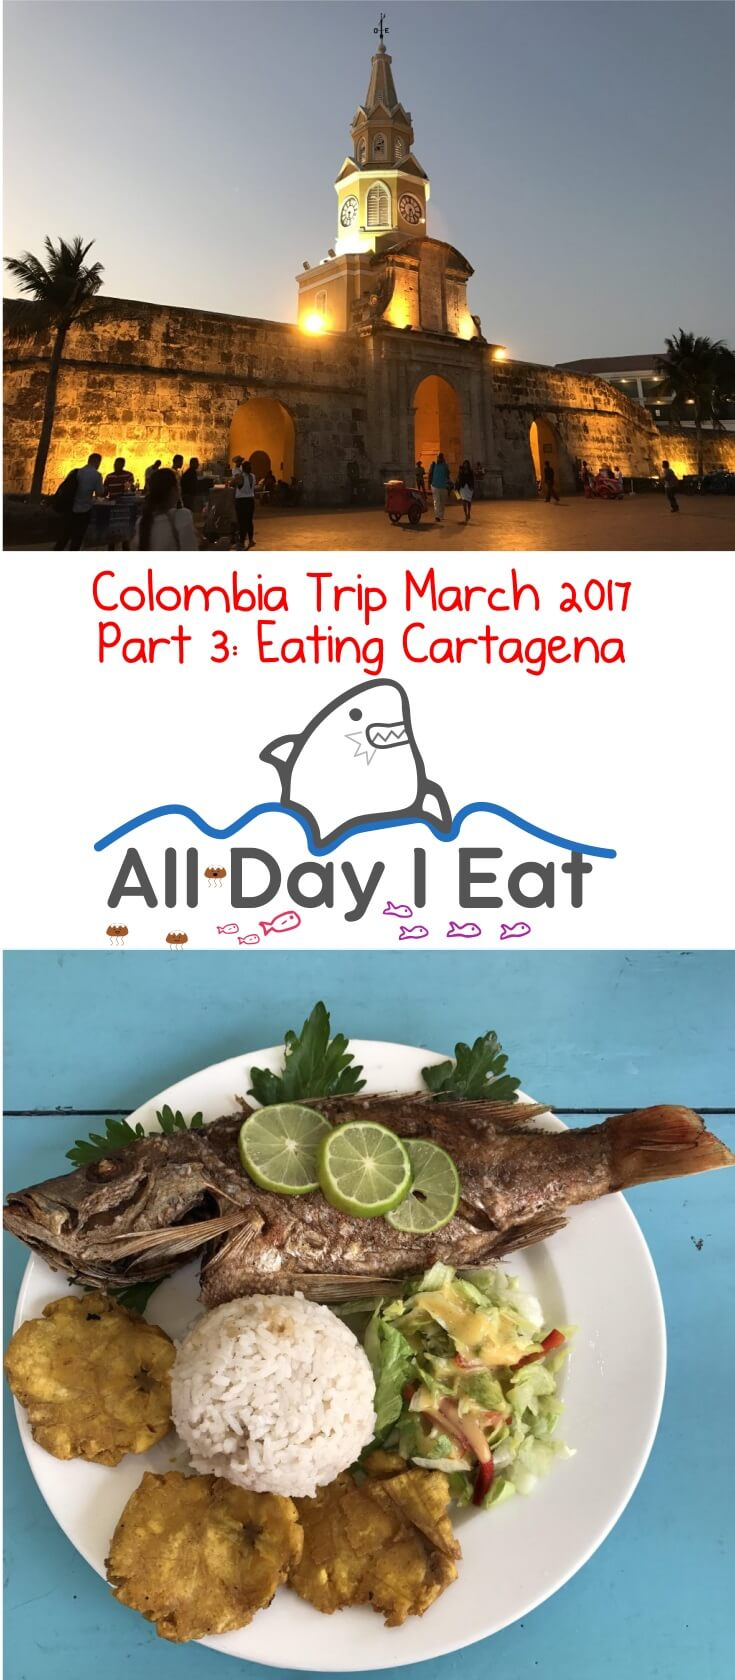 Colombia Trip March 2017 Part 3: Eating Cartagena. One of my favorite Colombian cities with delicious food! | www.alldayieat.com